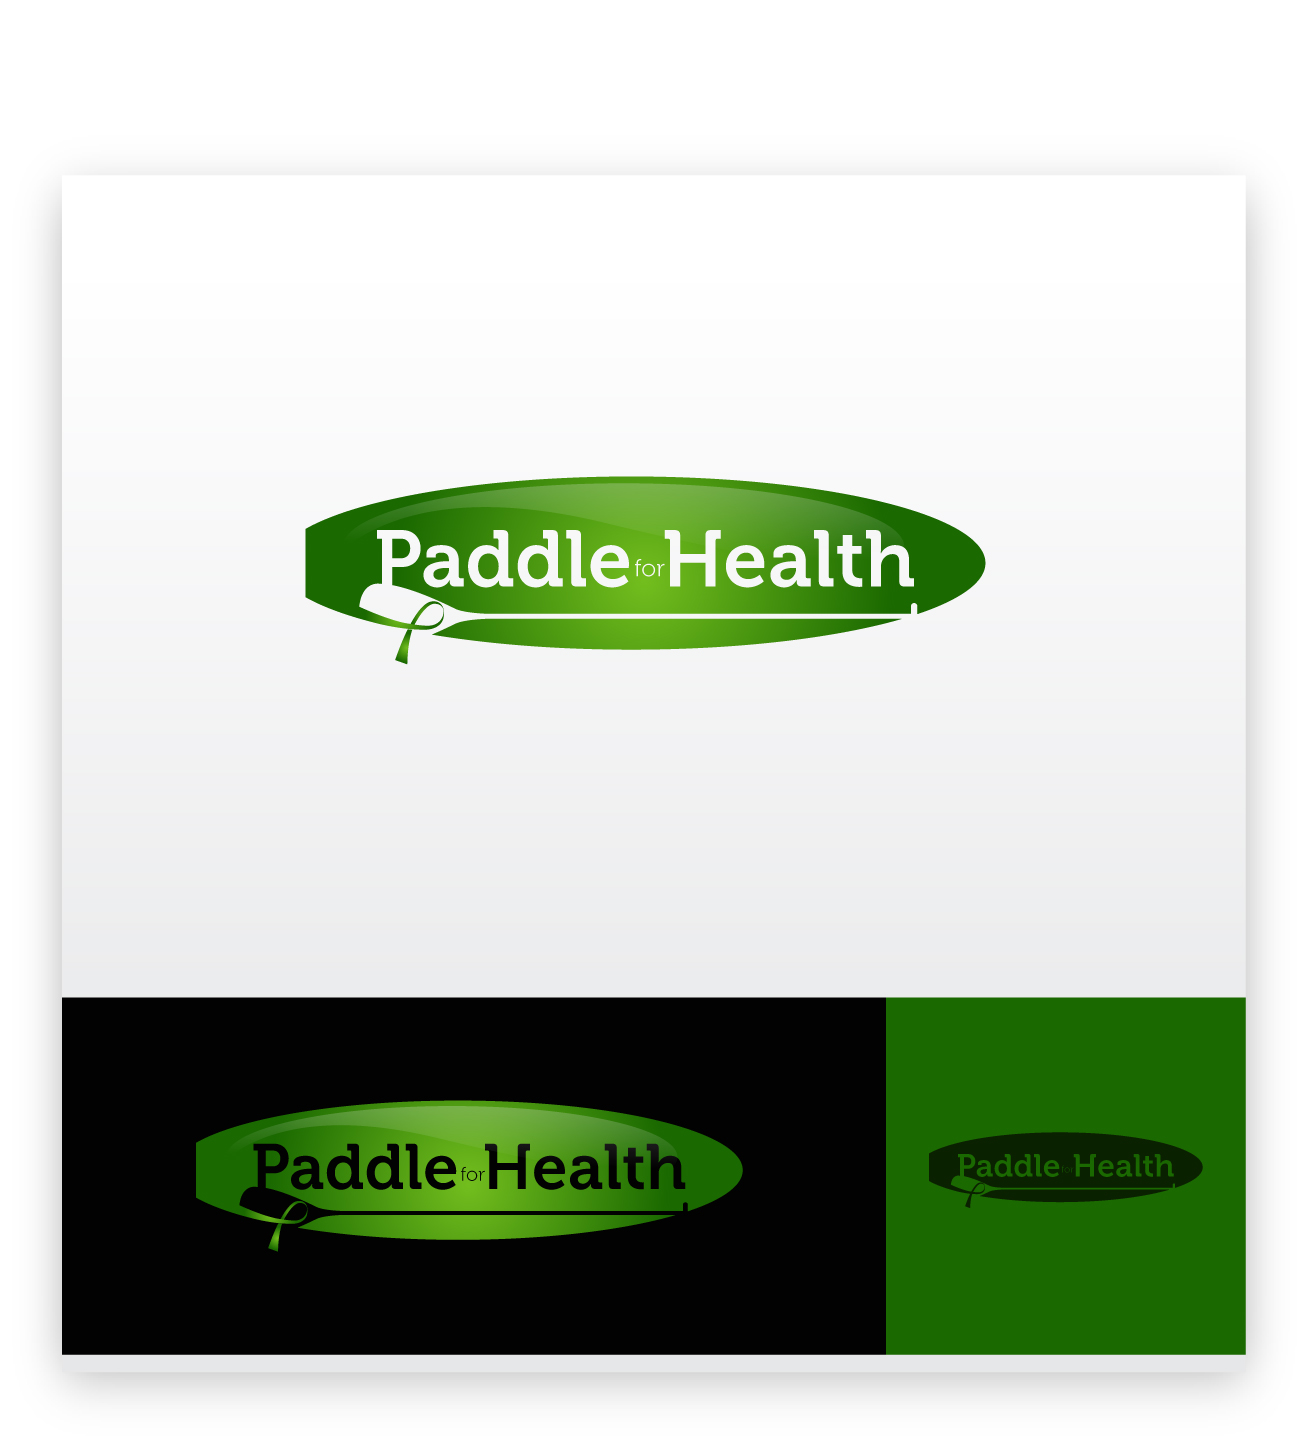 Logo Design by zoiDesign - Entry No. 26 in the Logo Design Contest Creative Logo Design for Paddle for Health.